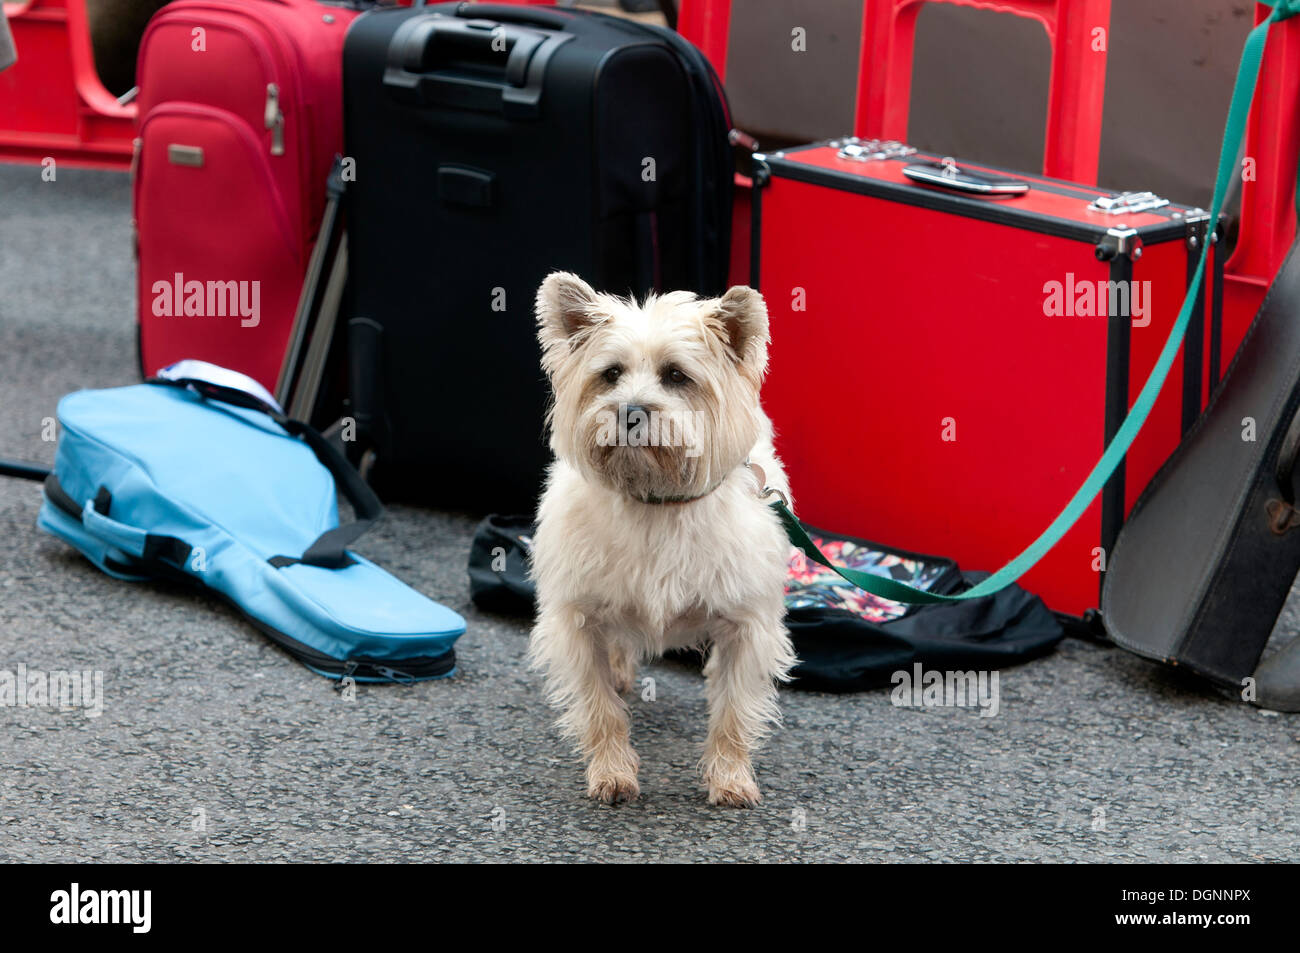 A dog tied up - Stock Image